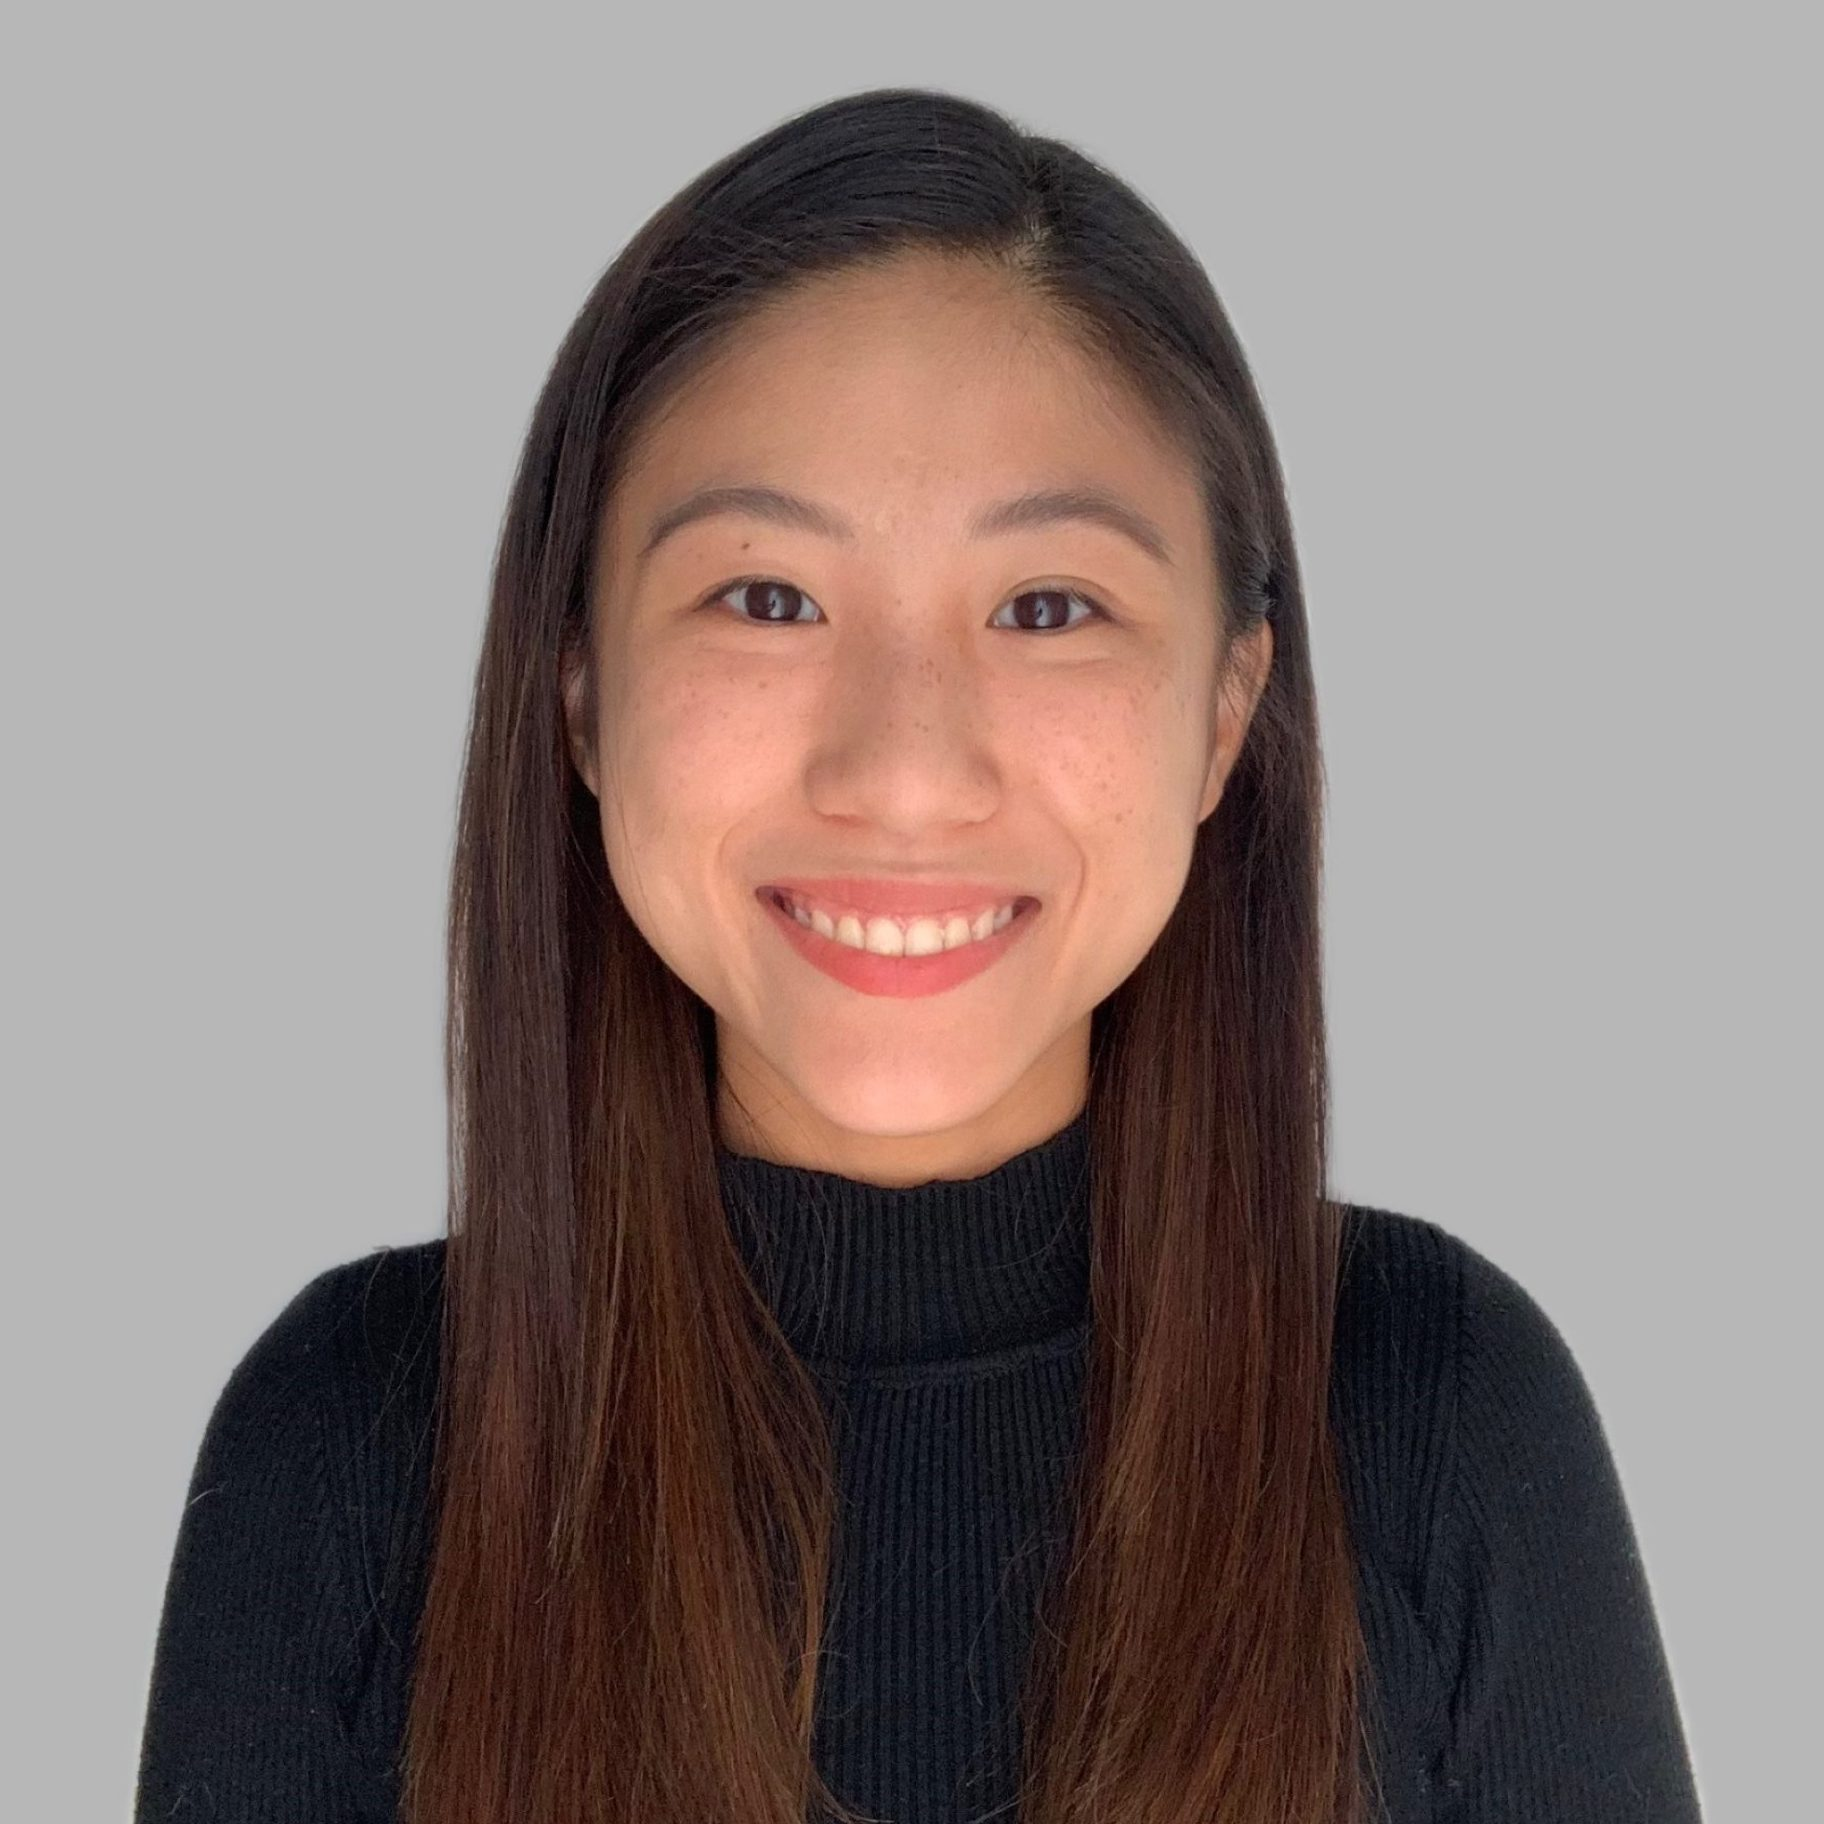 Vien Cheung, Morley, ORS